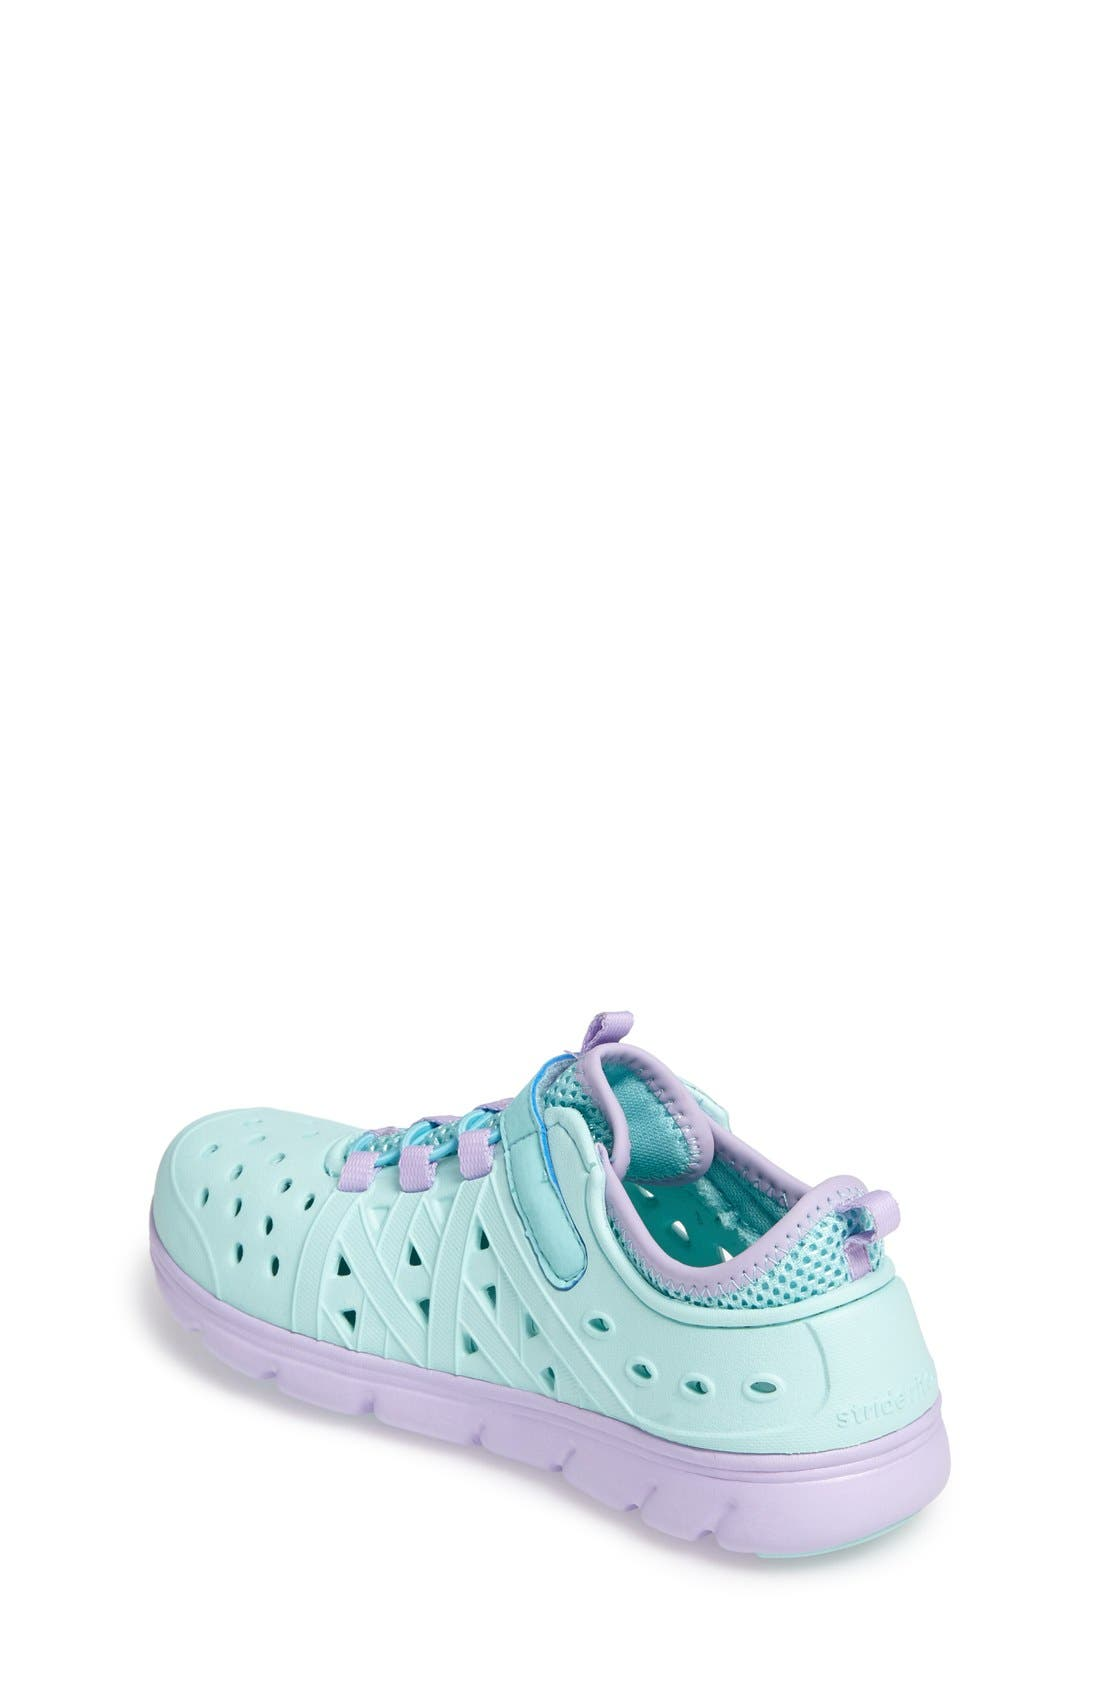 Made2Play<sup>®</sup> Phibian Sneaker,                             Alternate thumbnail 2, color,                             Turquoise